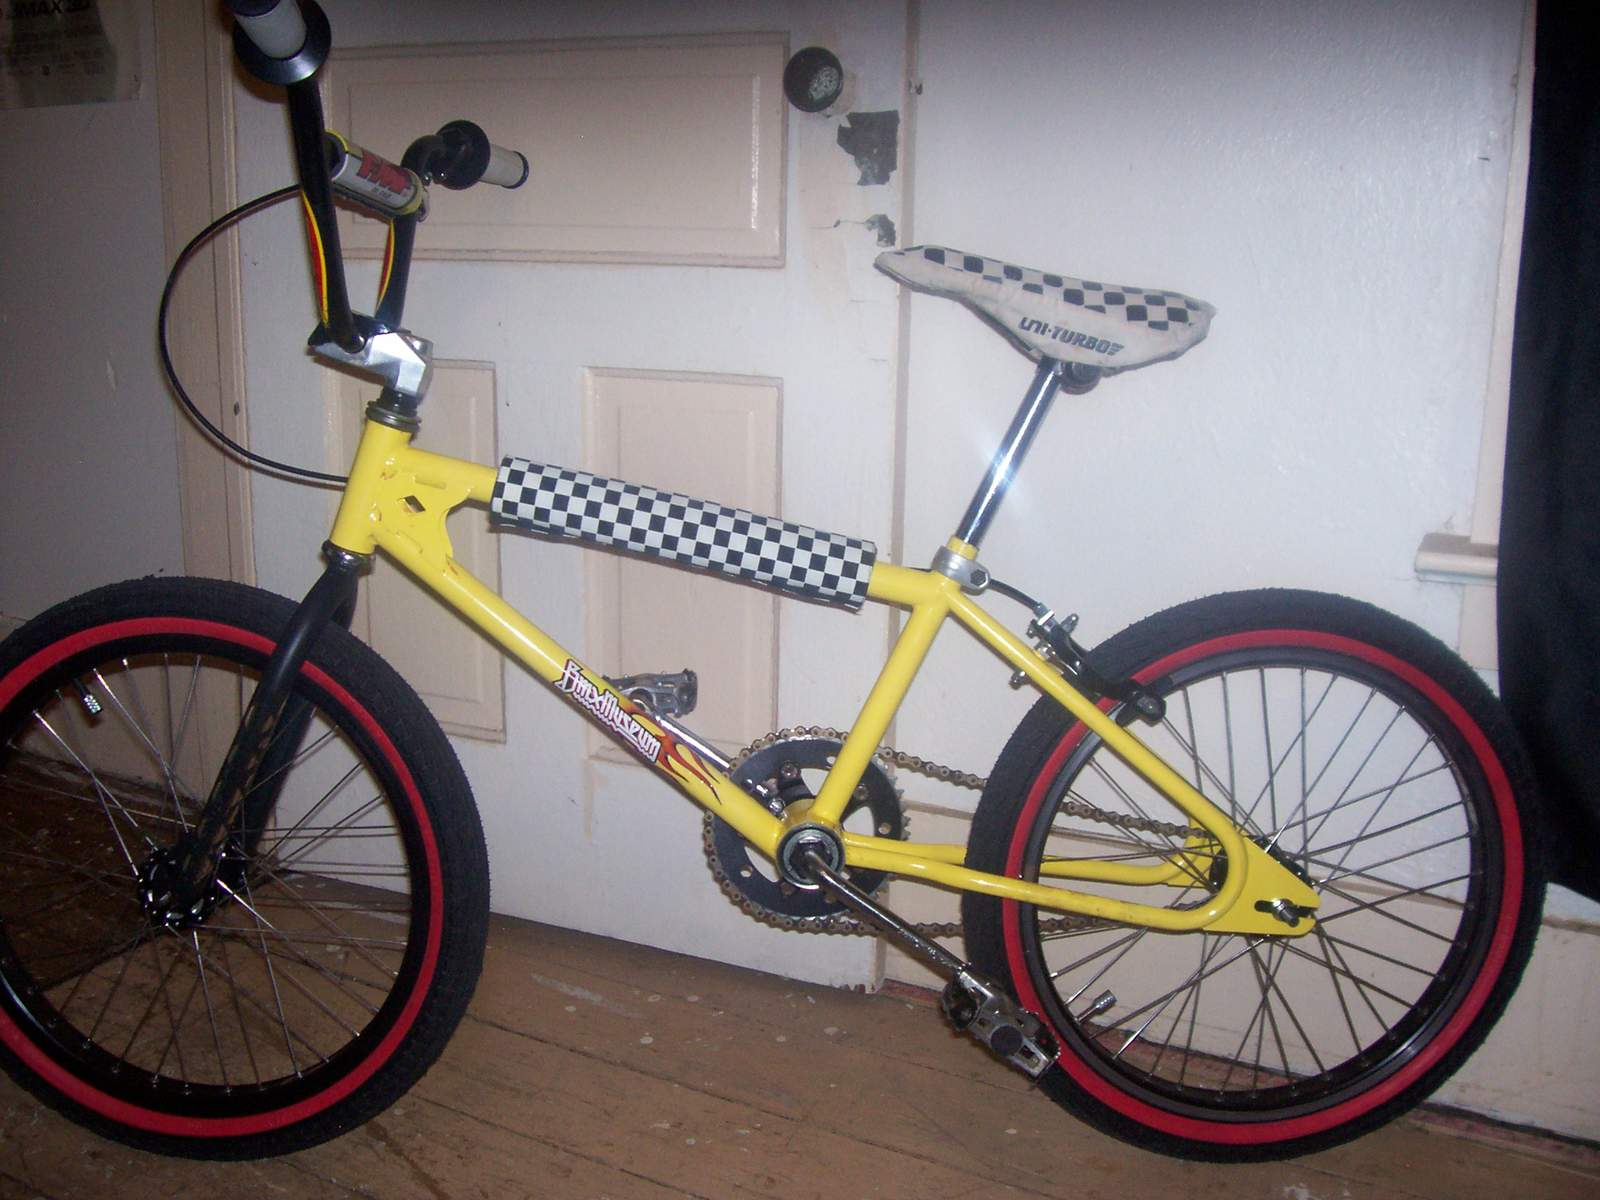 http://uploads.bmxmuseum.com/user-images/61851/100_696158426a08e1.jpg